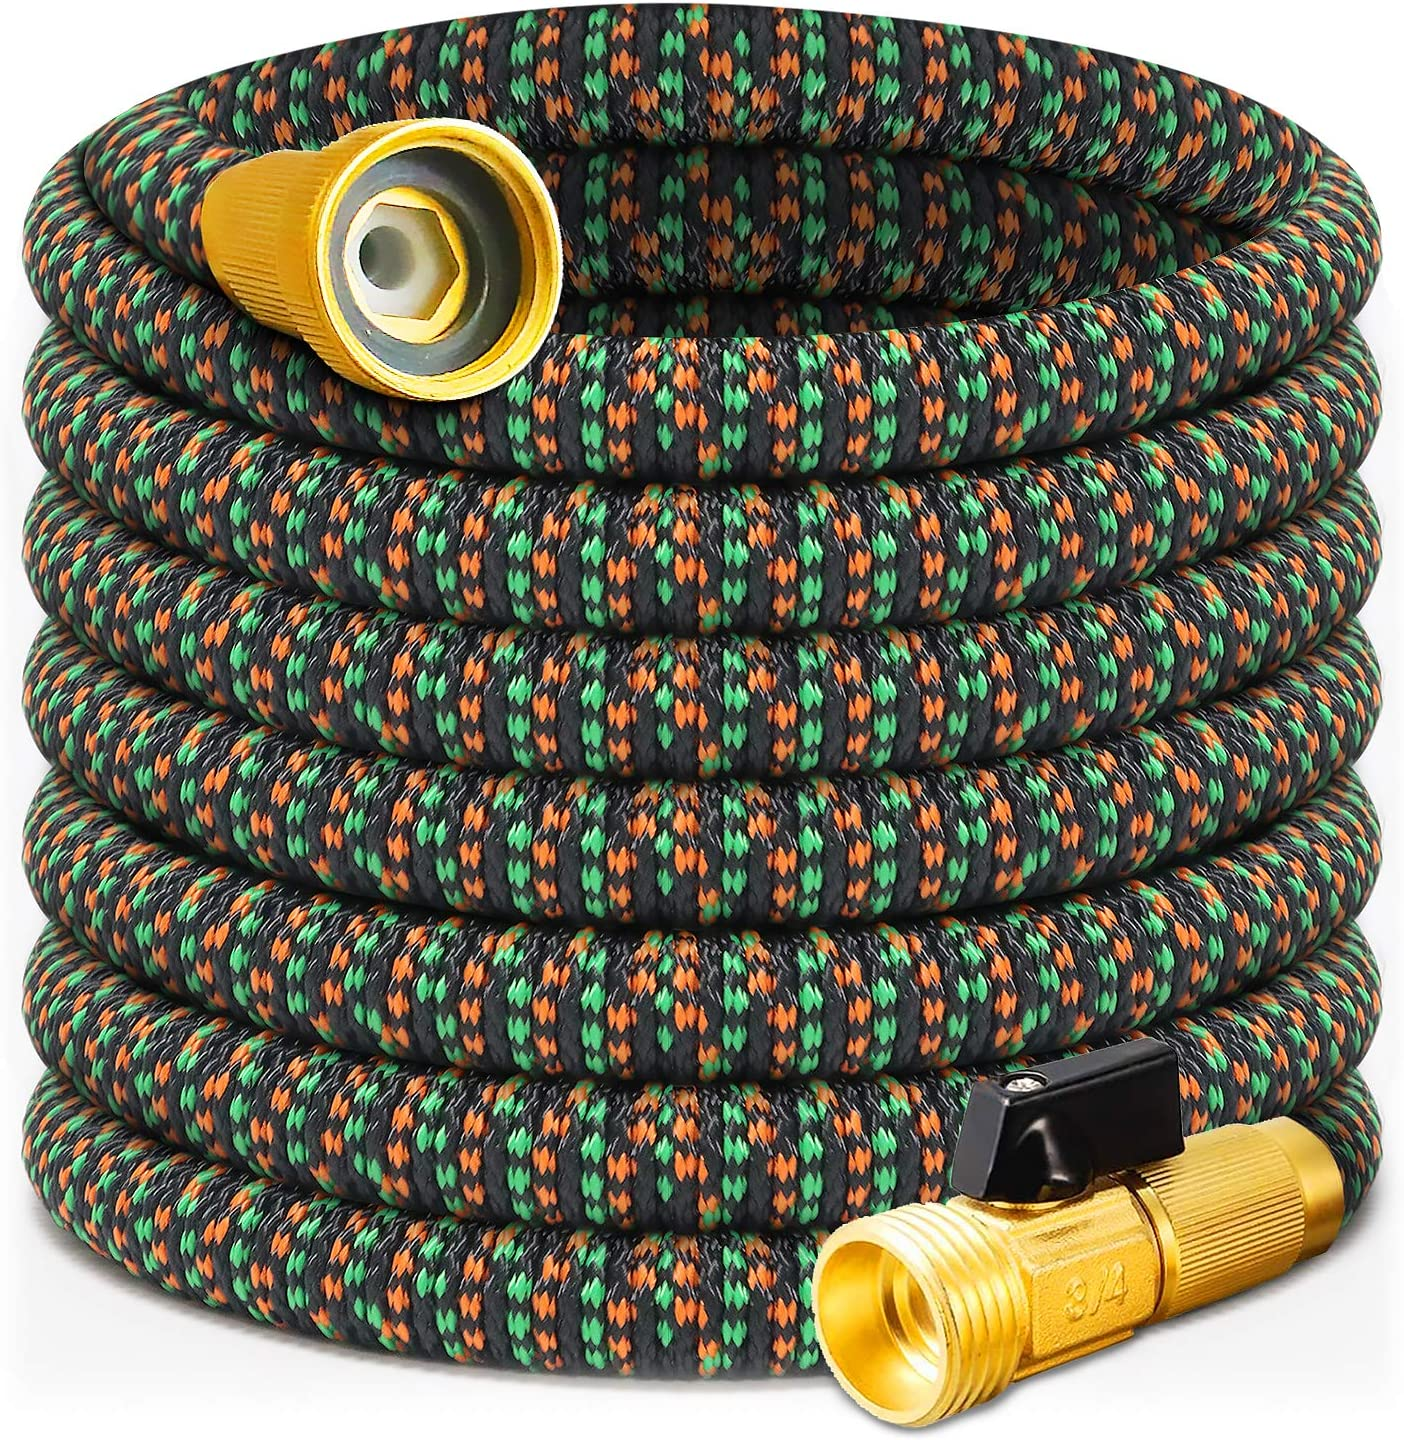 YUITCE Latest Garden Hose in 2020, Water Hose, Expandable trebling Over,10FT Leakproof,Explosion Proof,with 4 Layers of Flexible Latex. with 3/4 USA Anti-Rust 99% Brass Valve core (12.6, 10FT)